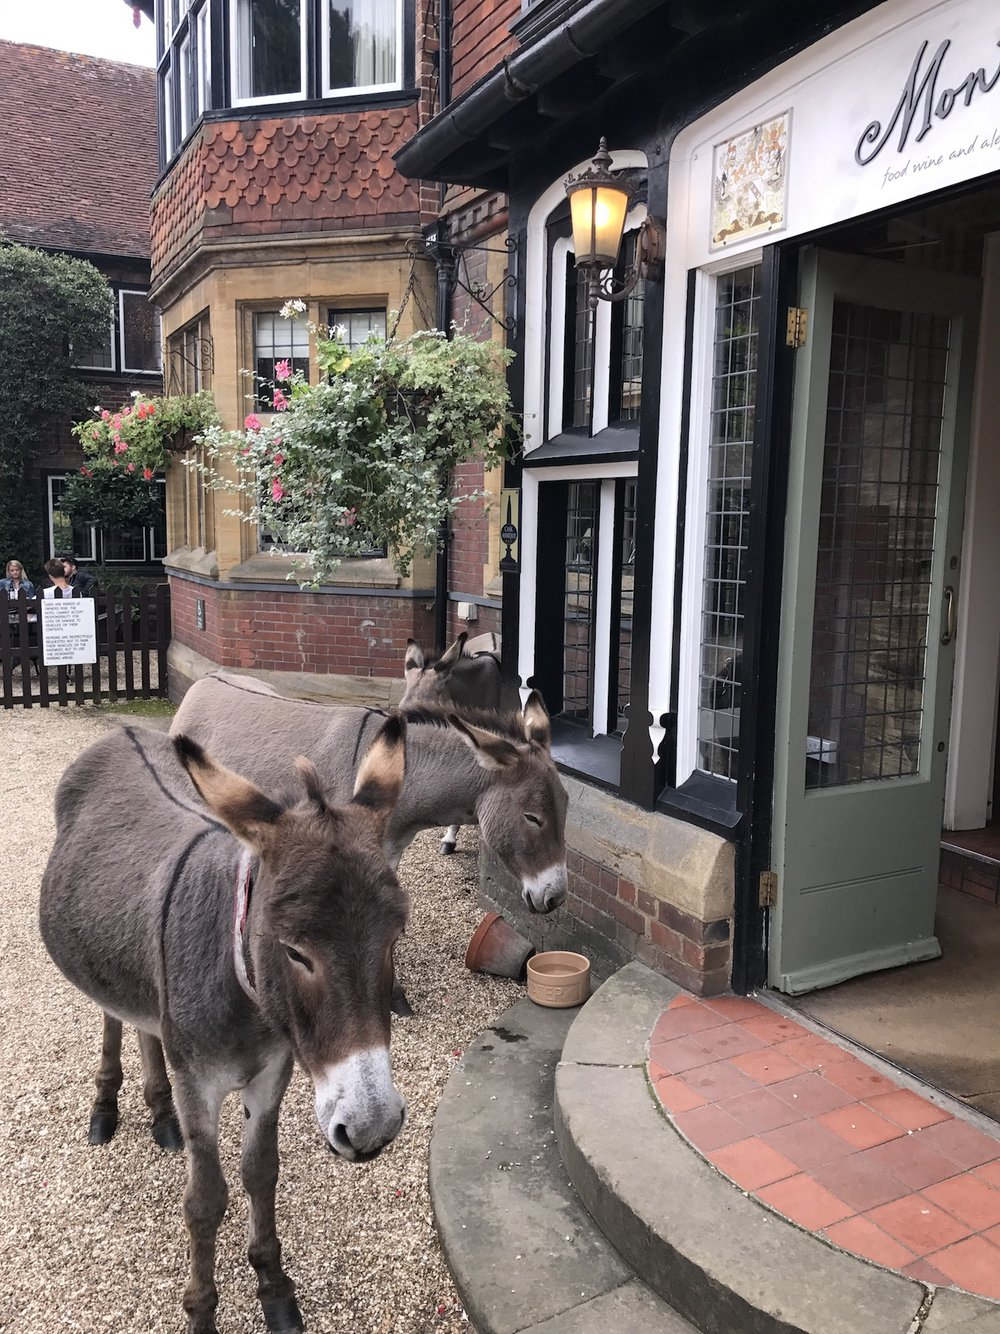 Click here to see video of the donkeys jamming up the streets .